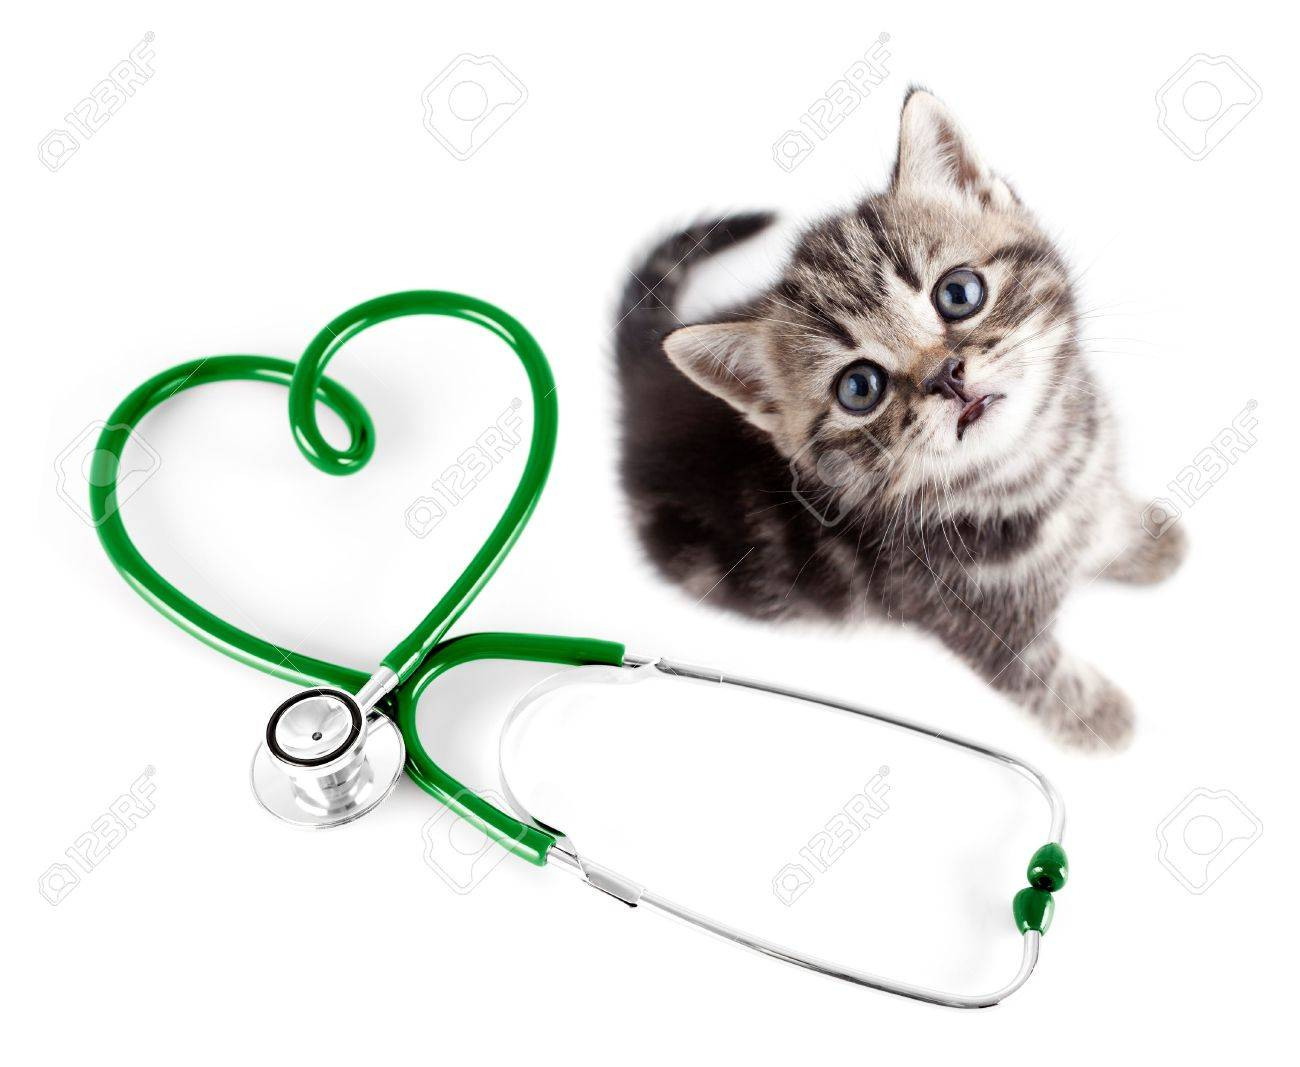 Veterinary for pets concept Stock Photo - 14559739